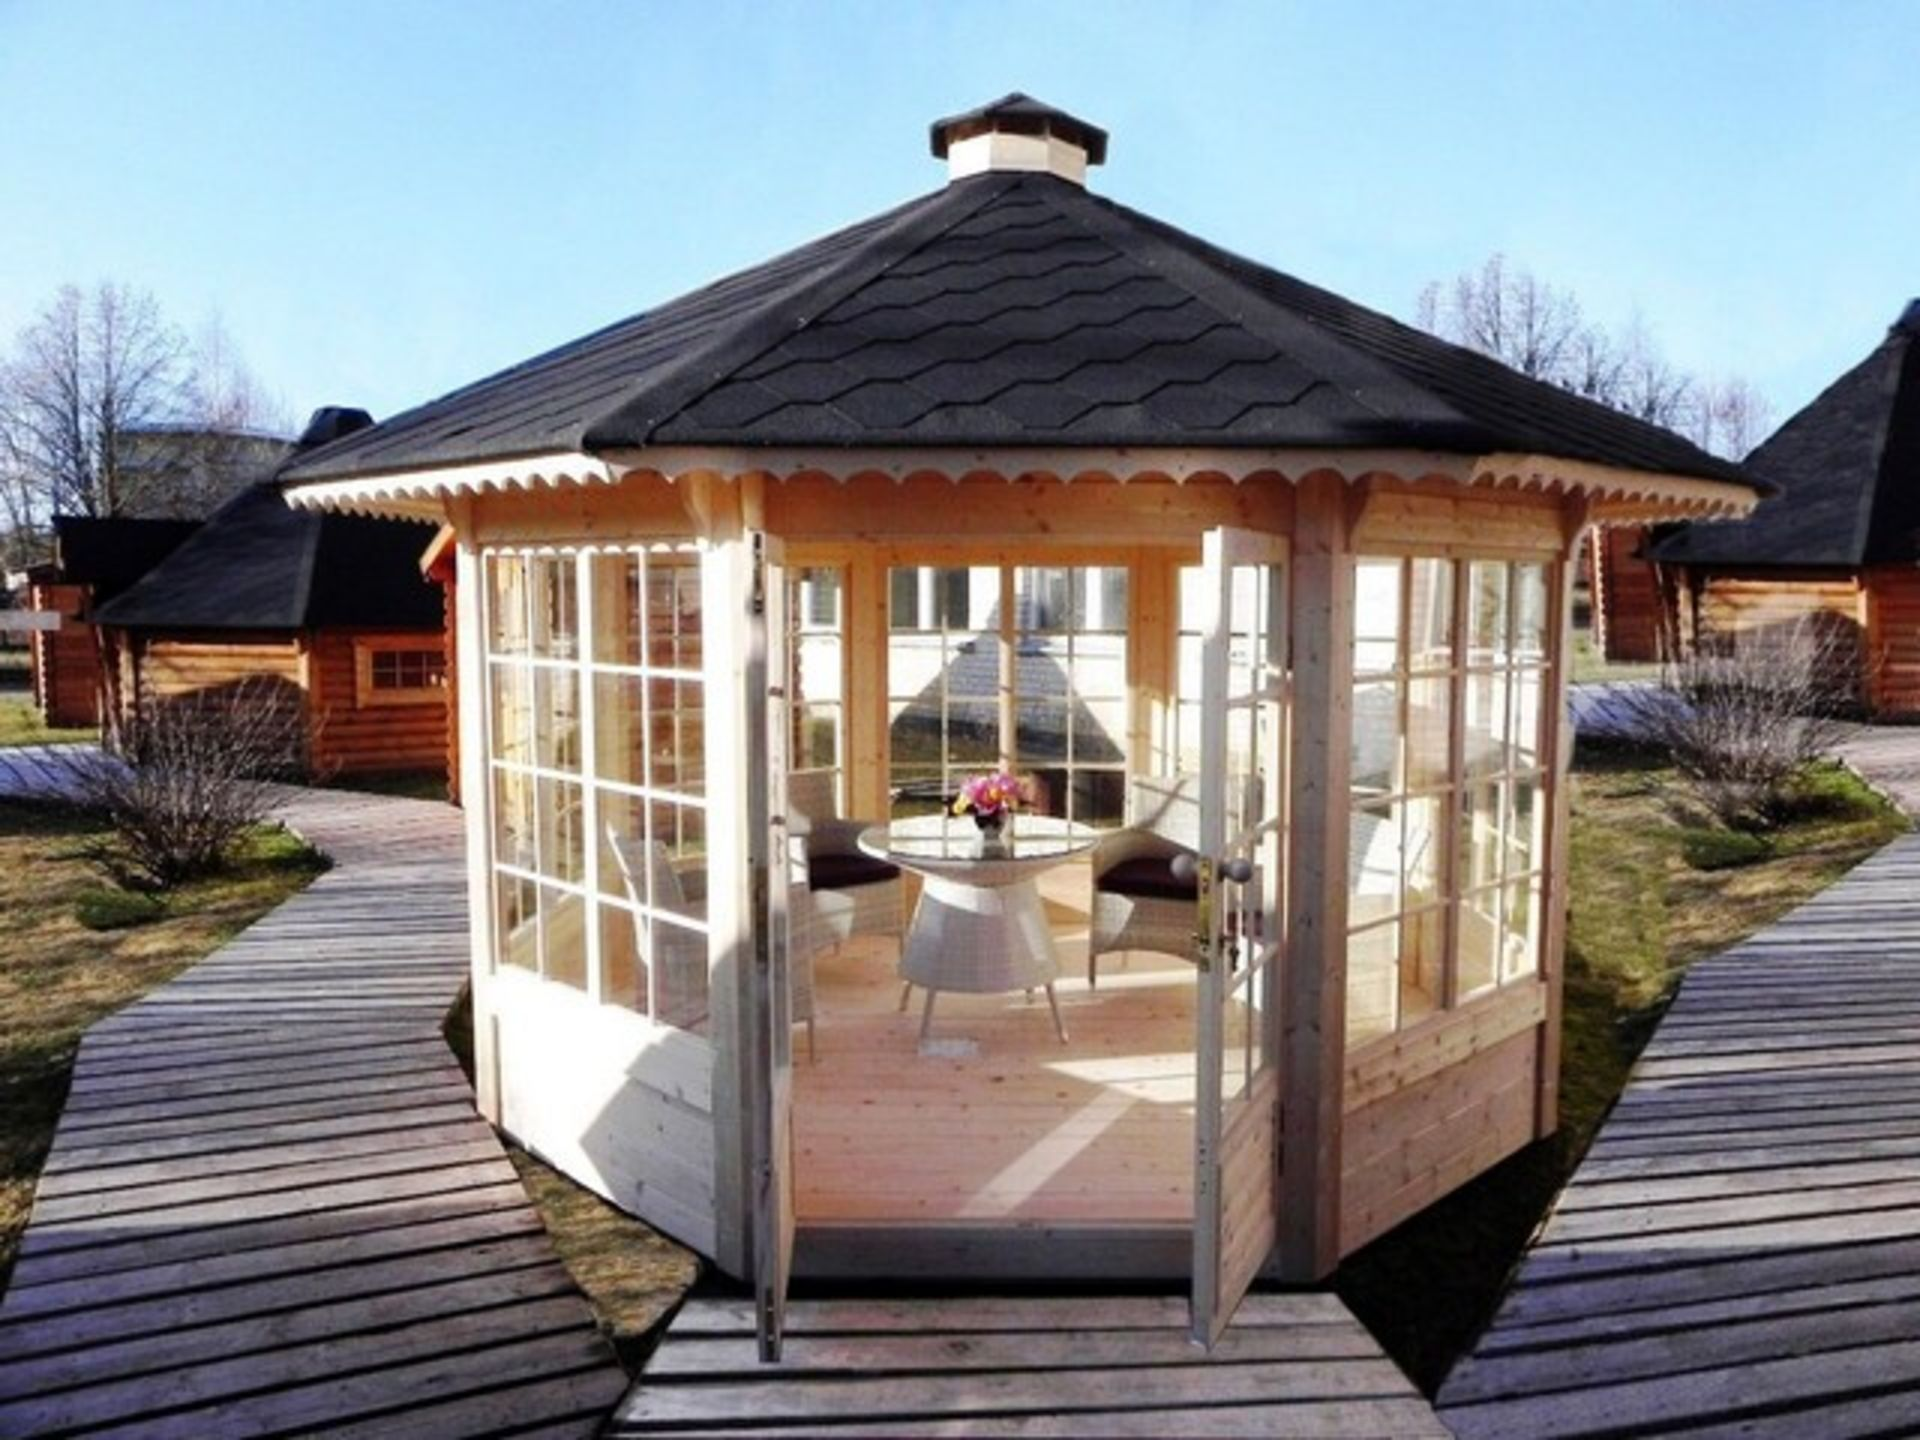 Lot 18041 - V Brand New 10m sq 8 Corner Pavillion - 7 Double Glass Windows (3 Opening) - Double Doors With